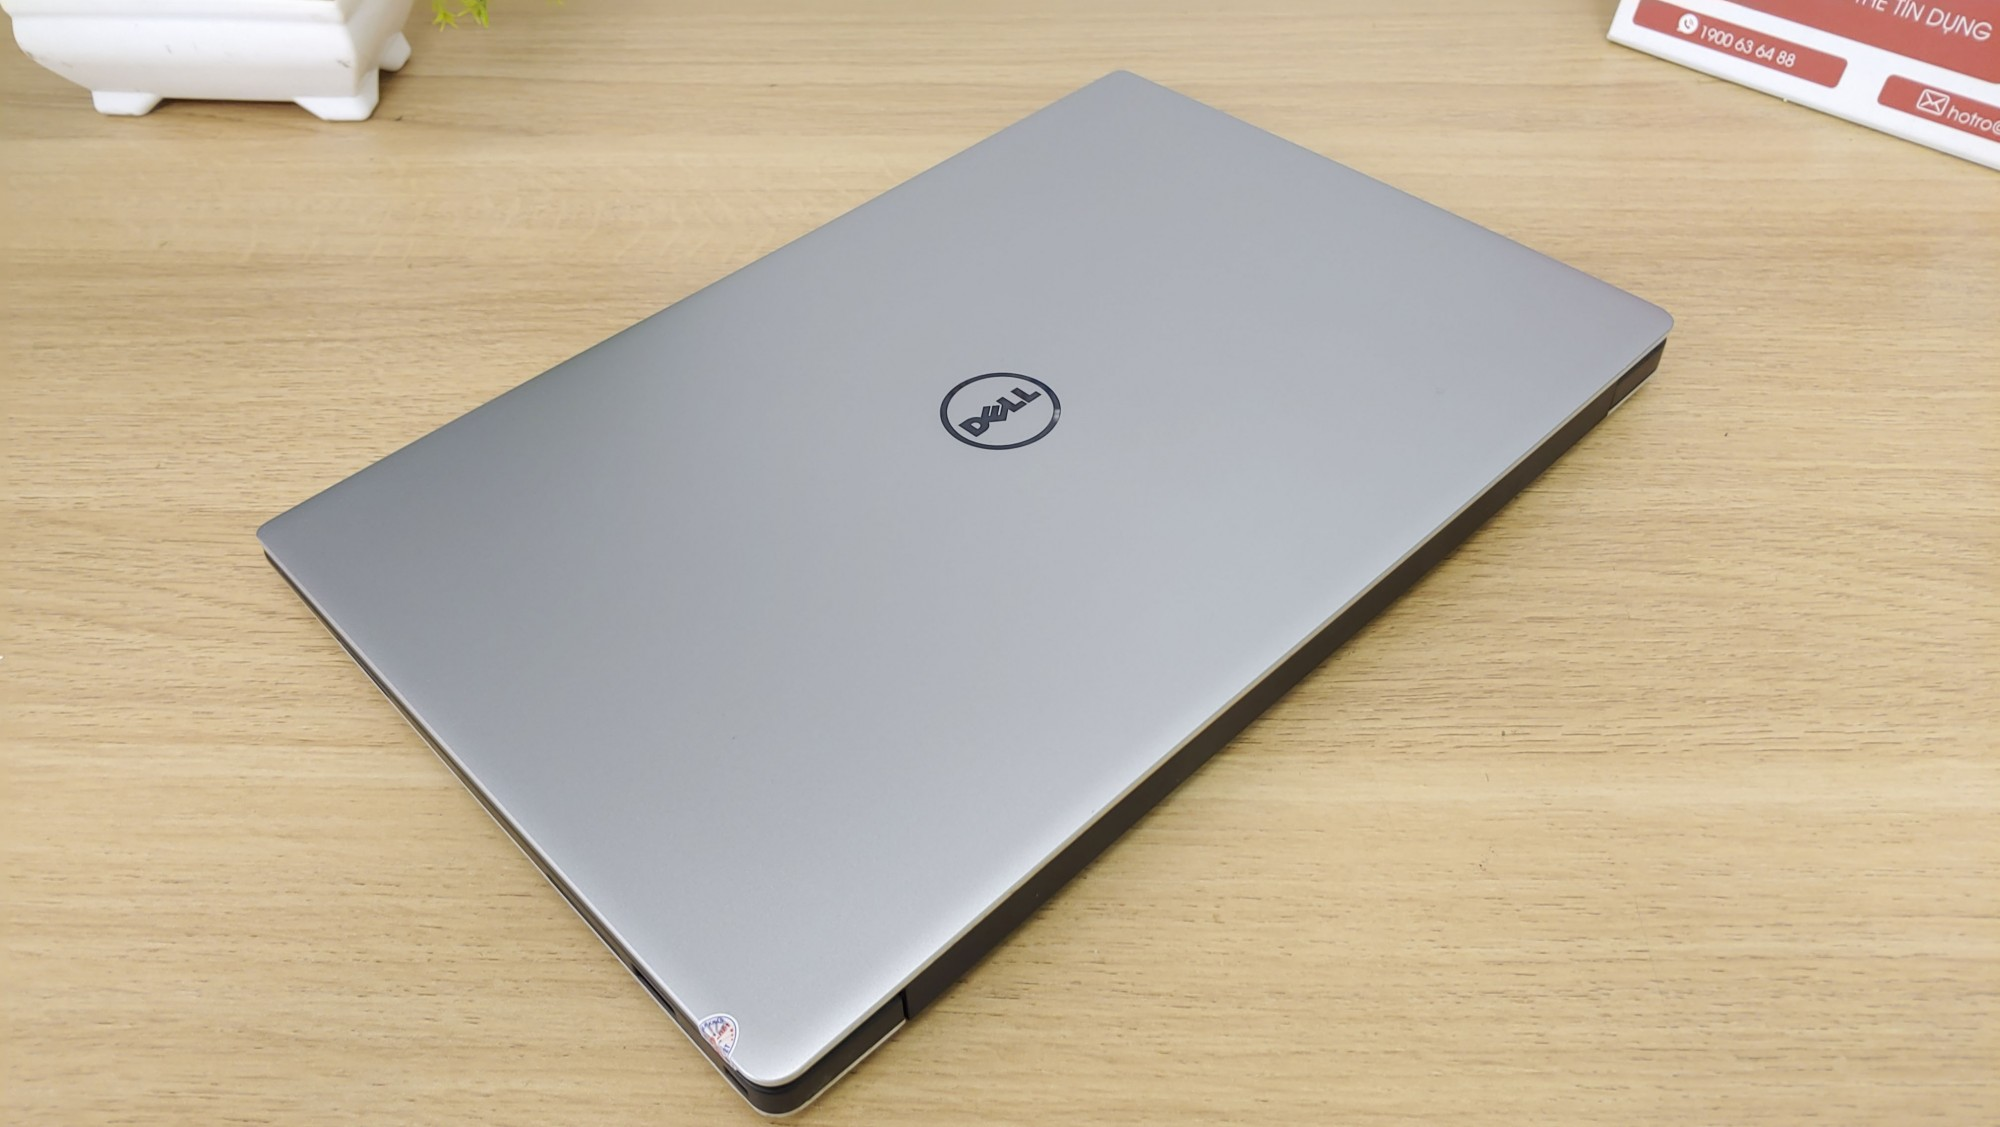 Dell XPS 13 9343